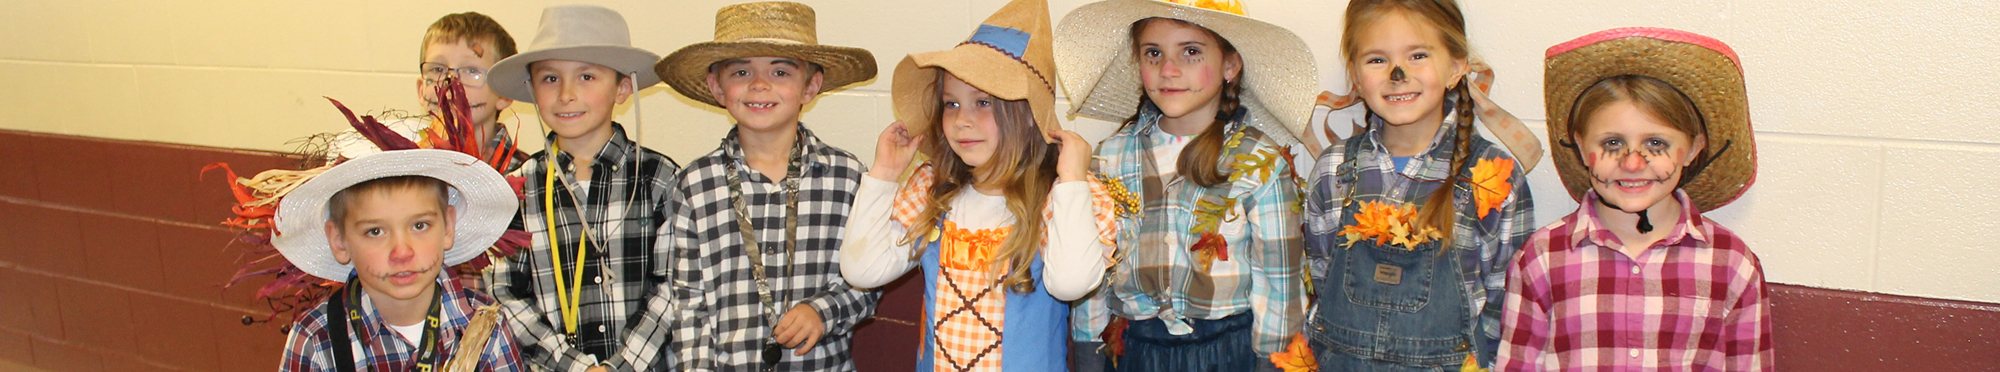 young students dressed up as scarecrows